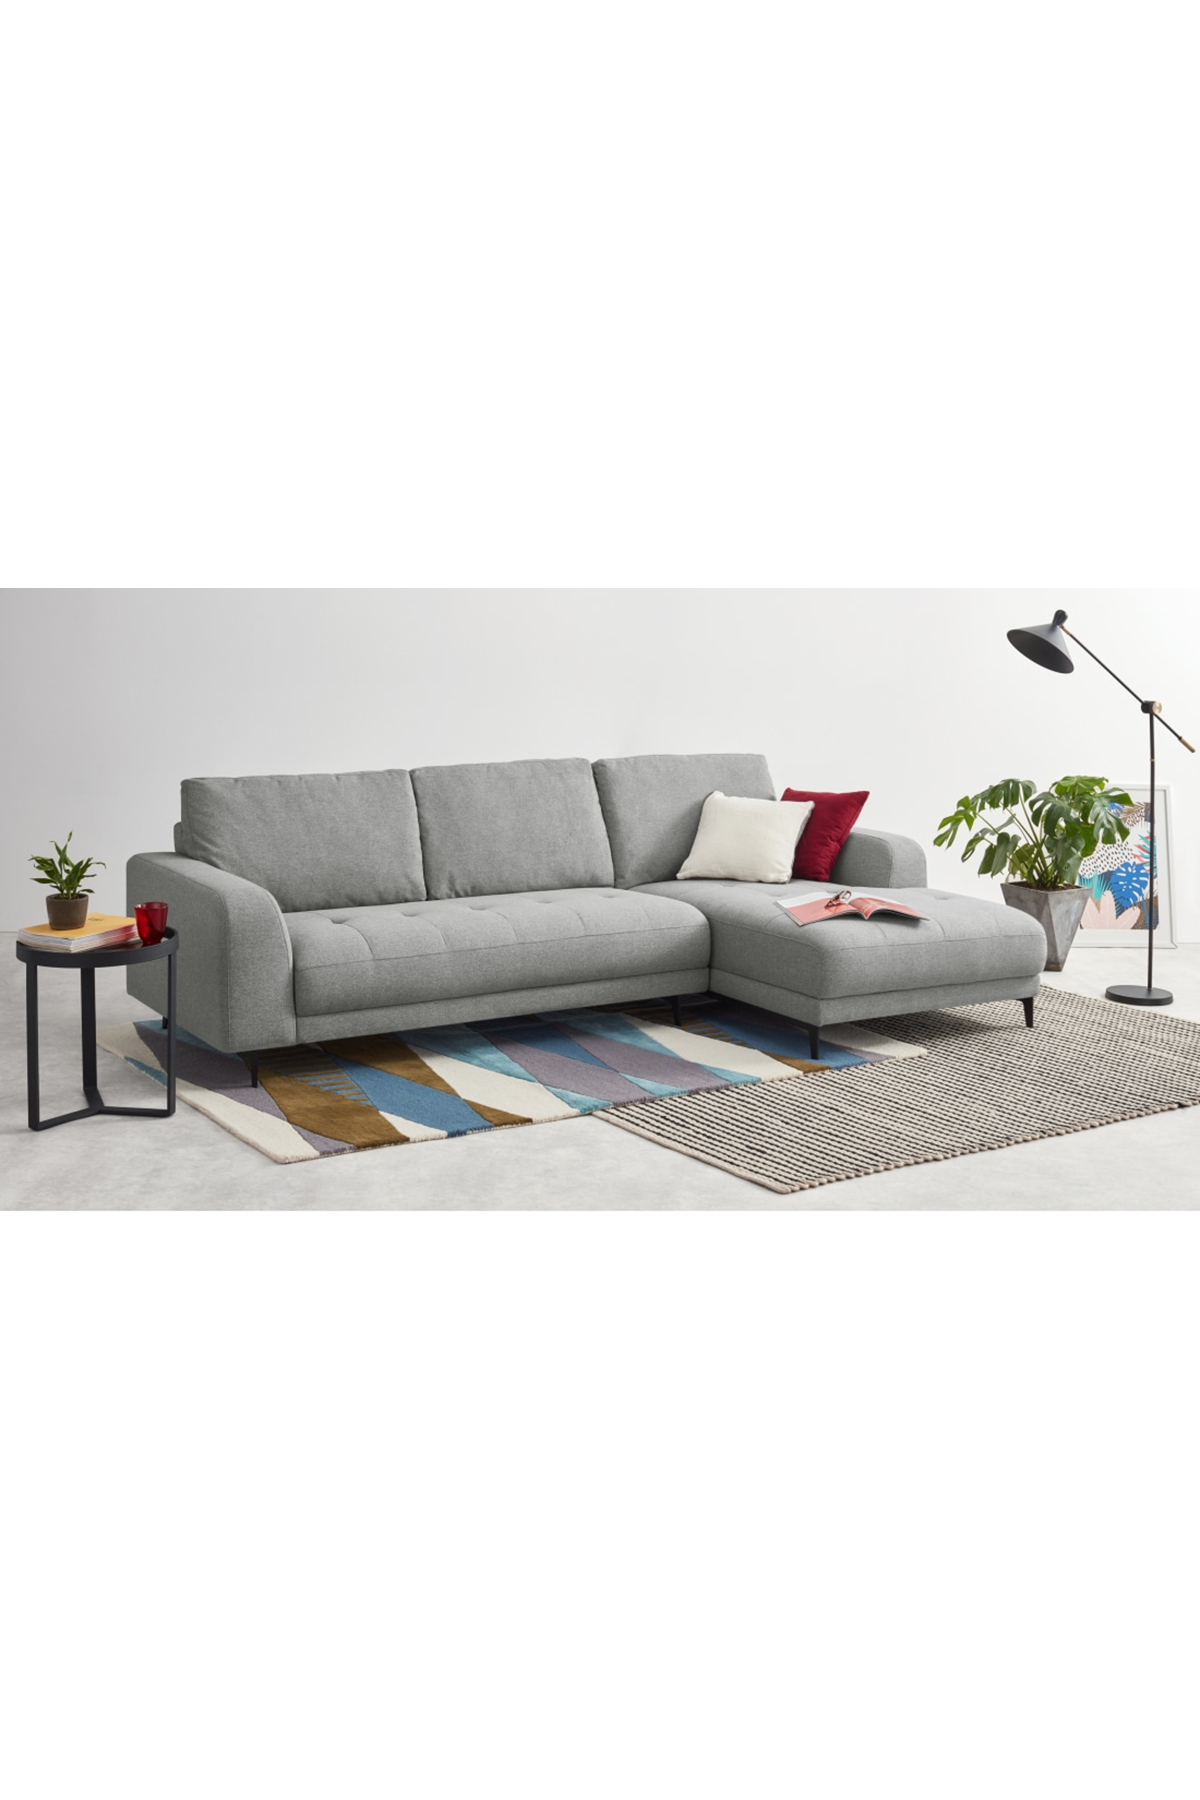 Luciano Right Hand Facing Chaise End Corner Sofa Mountain Grey Corner Sofa Sofa Grey Corner Sofa